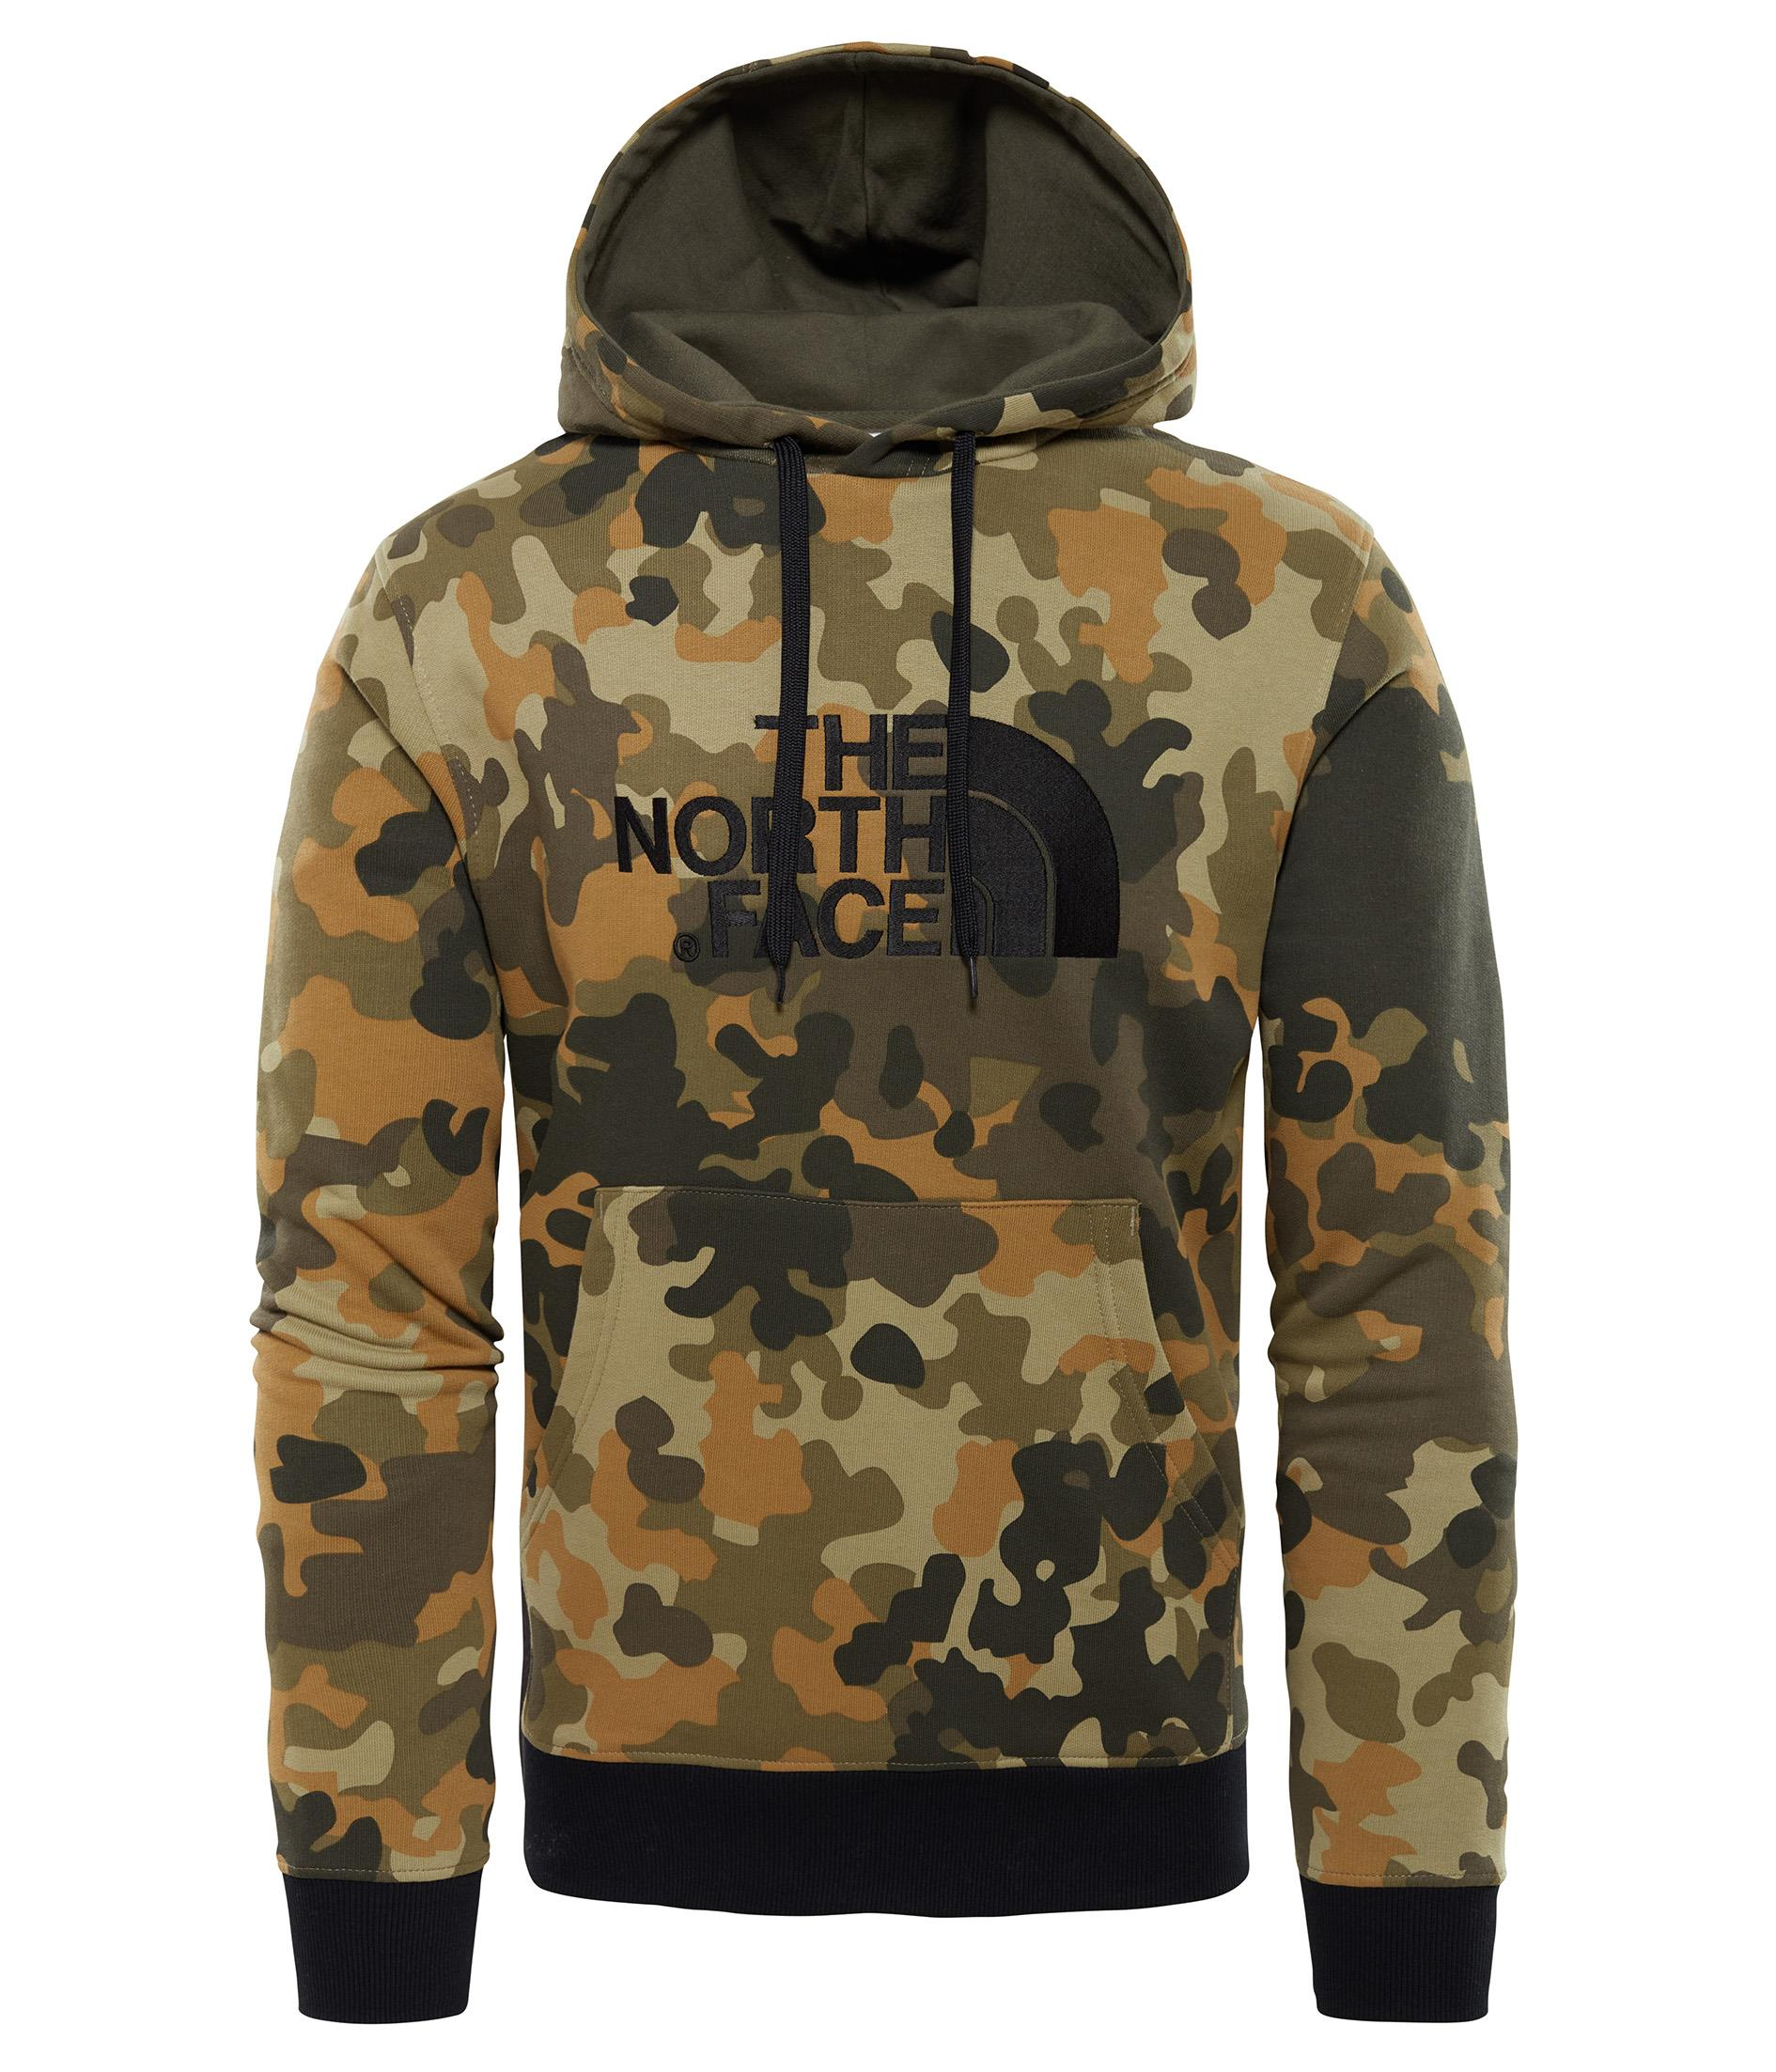 The North Face Drew Peak Erkek Kamuflaj Sweatshirt T0AHJY5XP